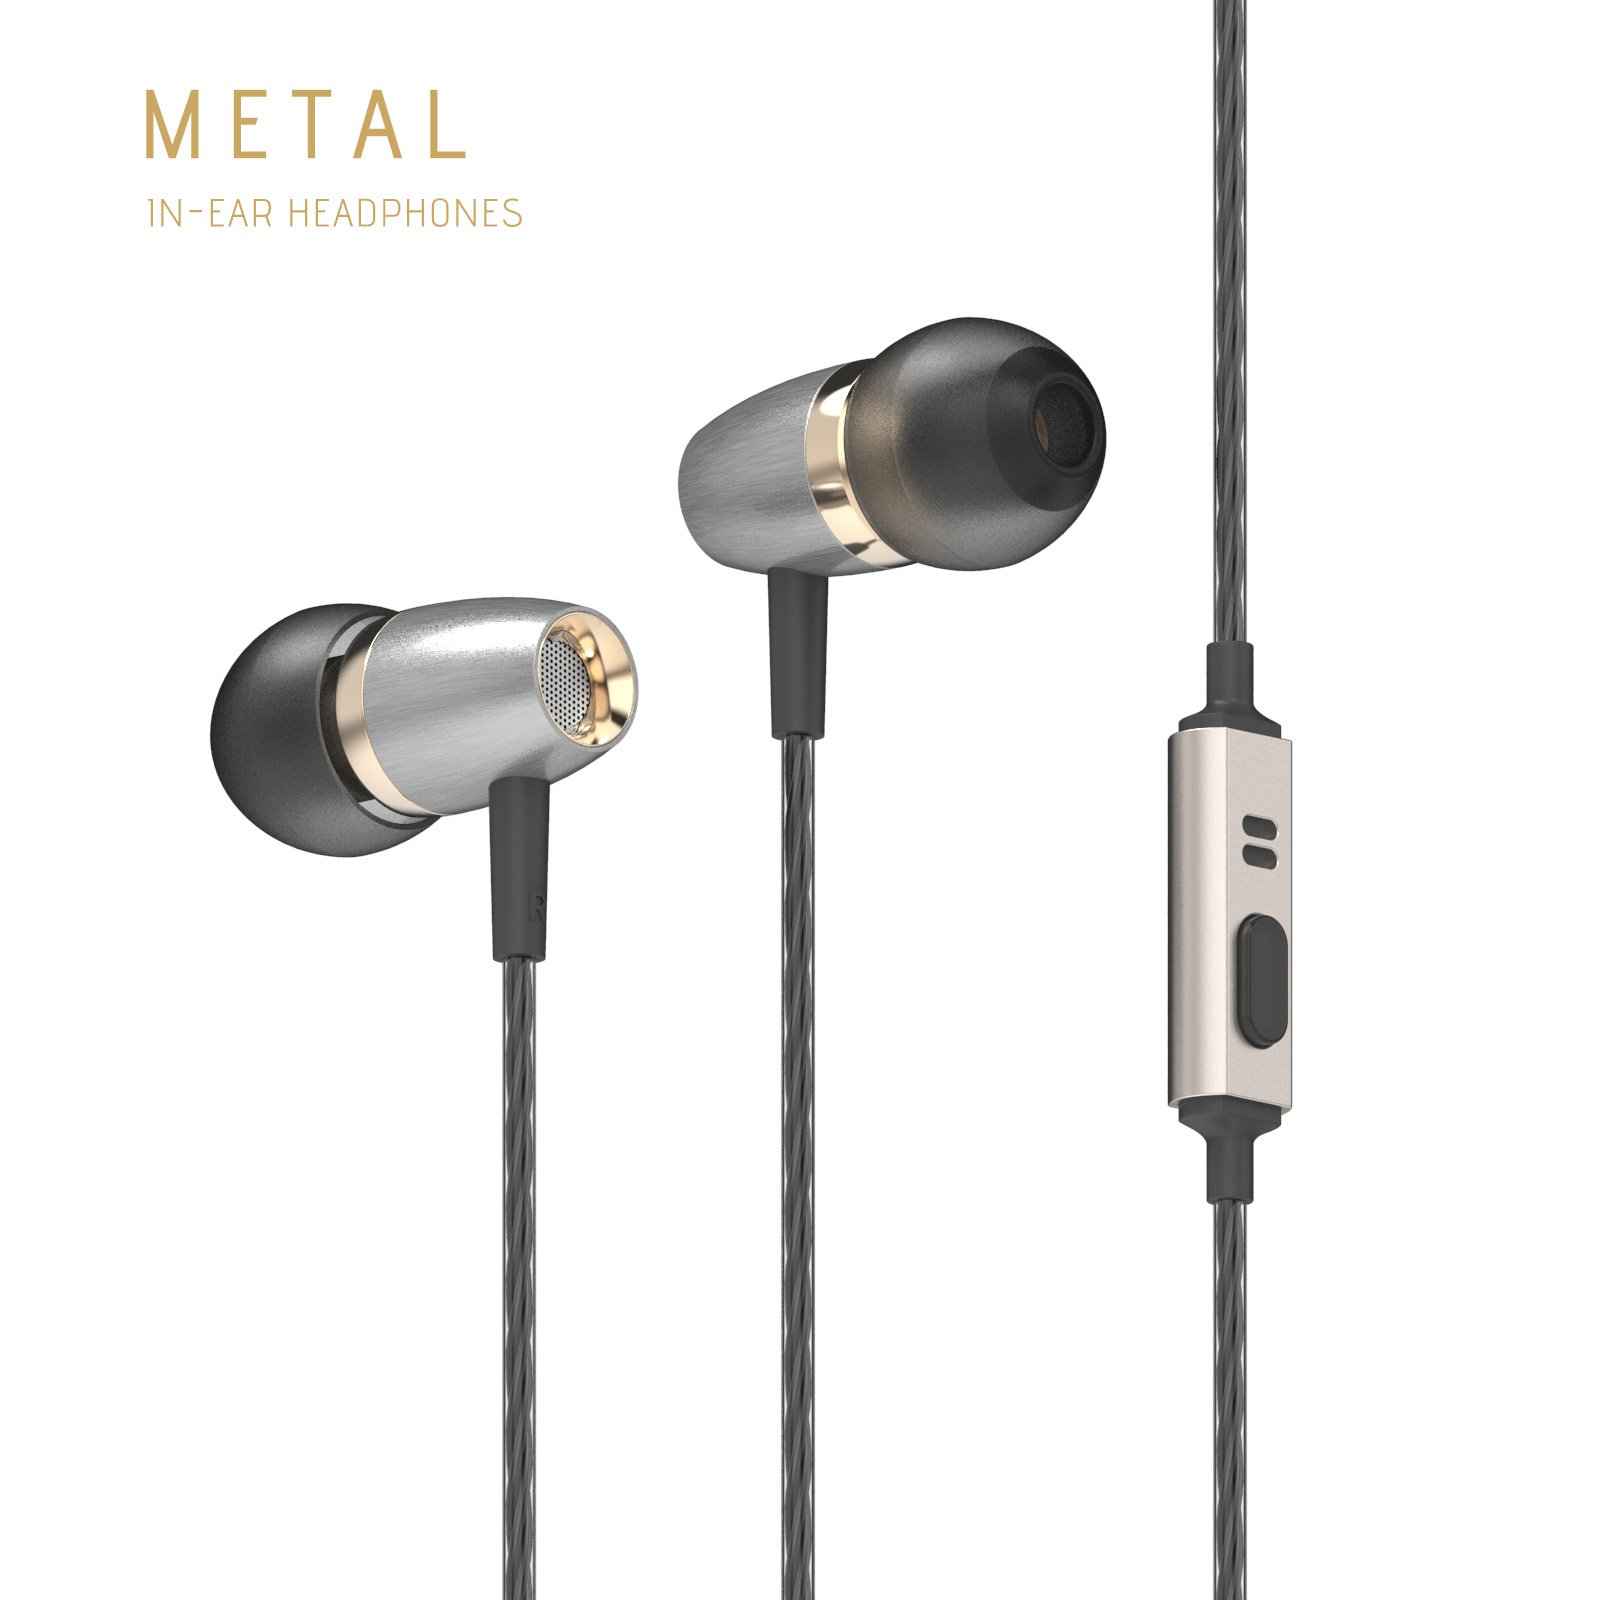 d7df66a1e97c45 Betron AX3 Earphones Noise Isolating in Ear Headphones Balanced Bass Driven  Sound with Microphone ...